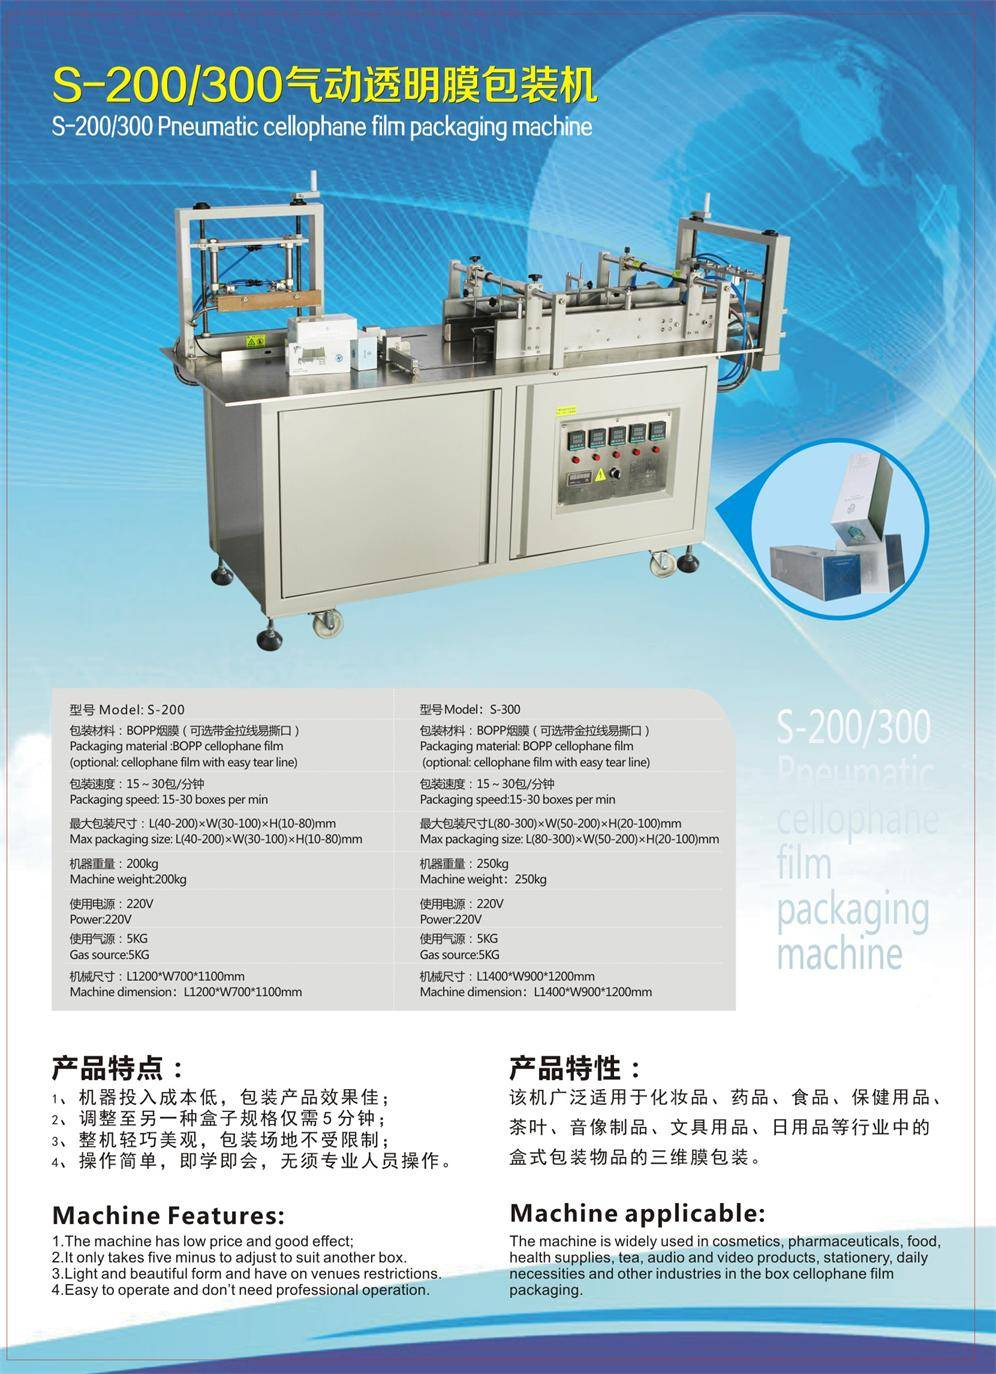 Semi-automatic pneumatic cellophane three-dimensional packaging machine